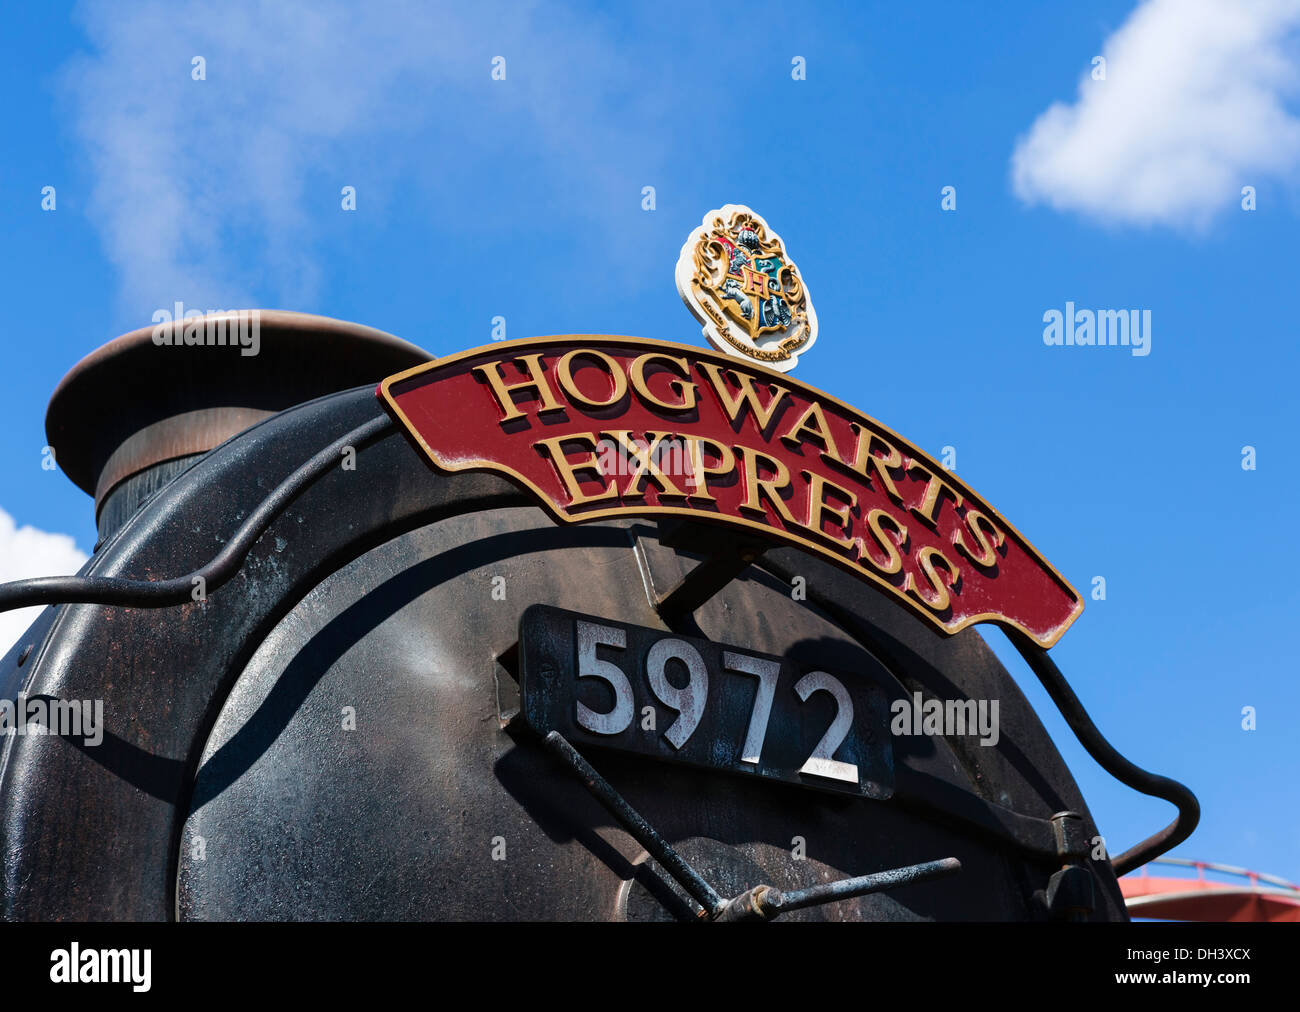 Hogwarts Express Train In Wizarding World Of Harry Potter